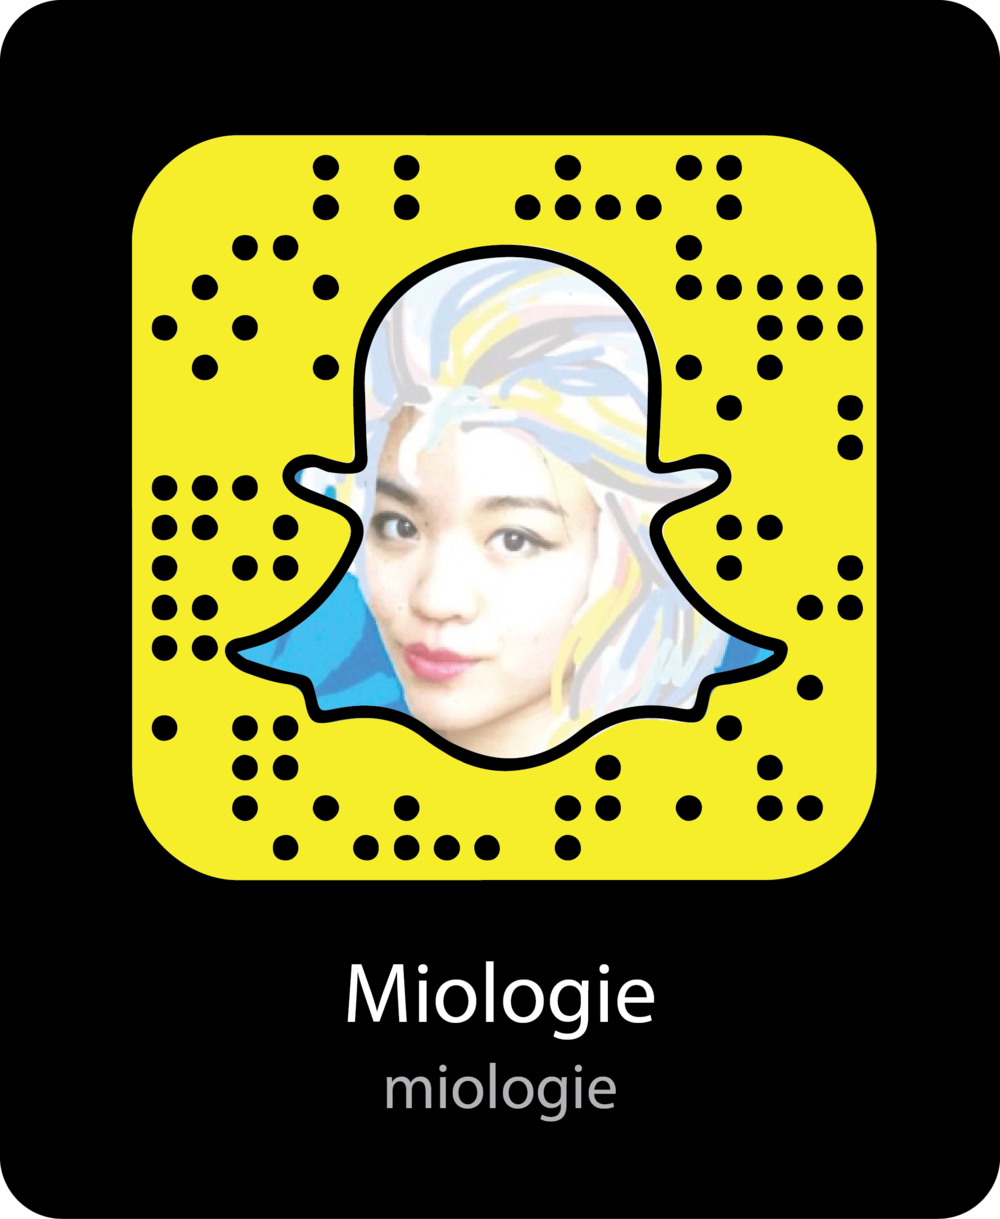 miologie-artists-snapchat-snapcode.png